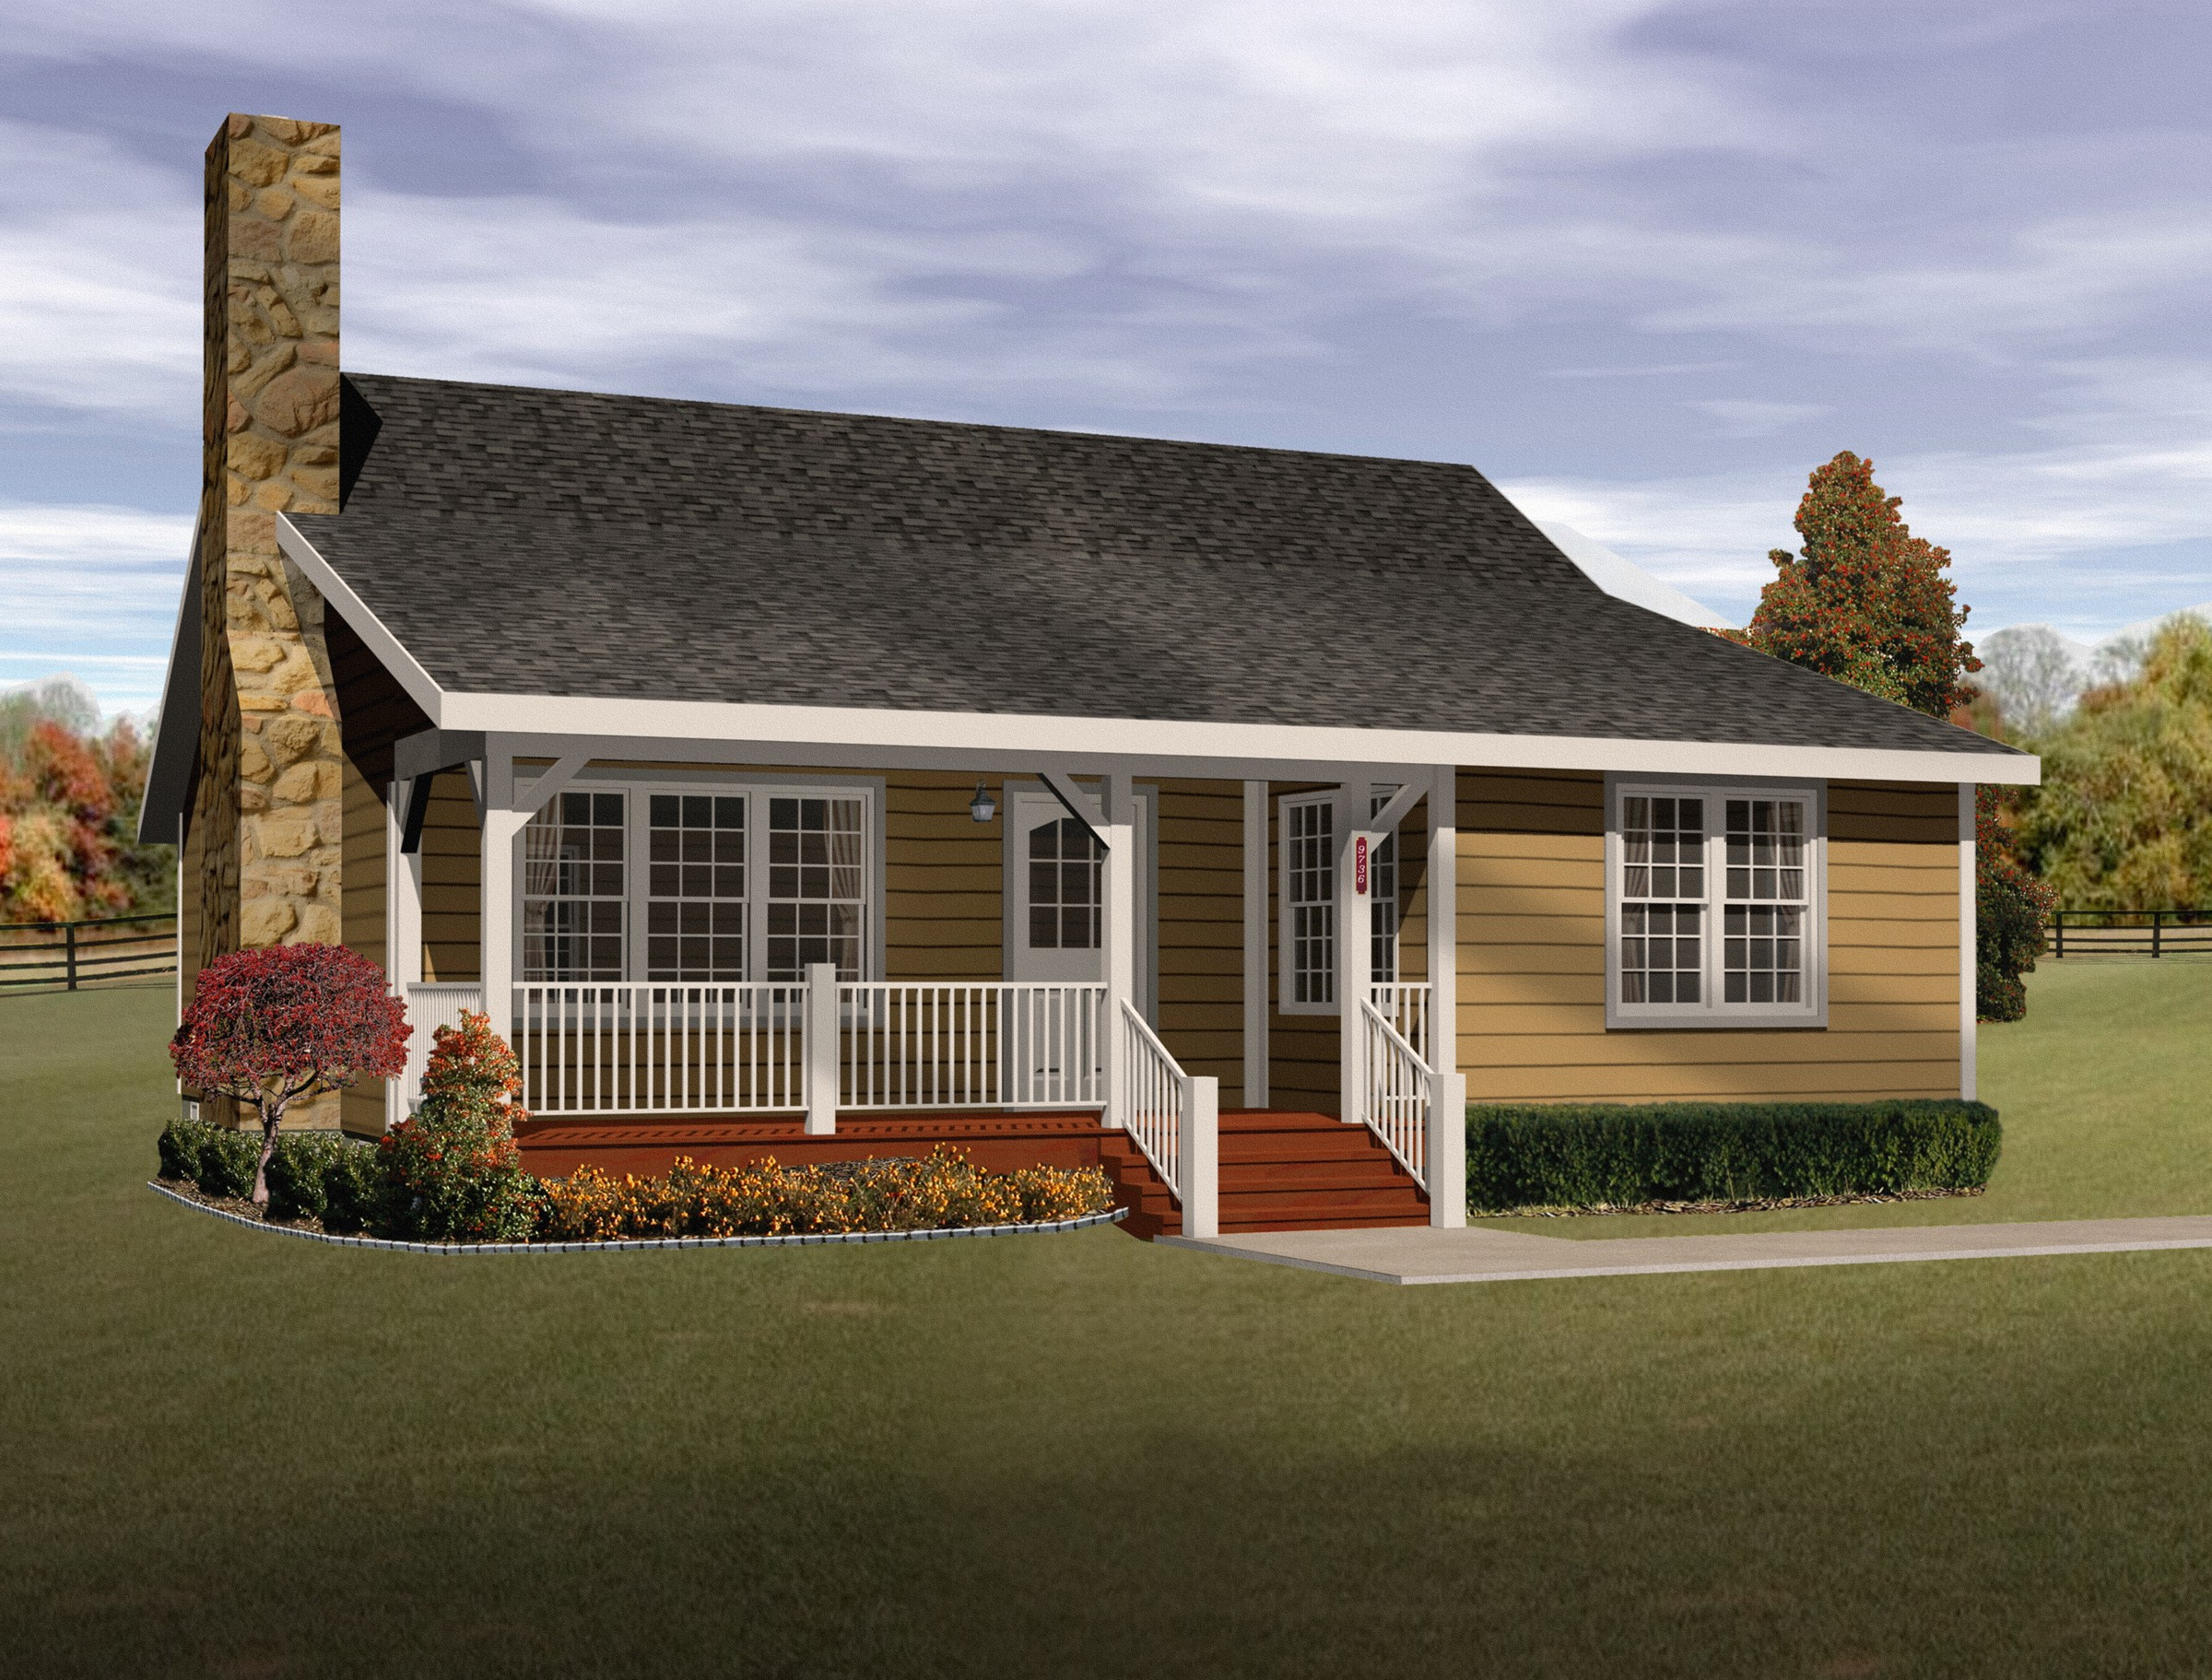 Cozy cottage home plan 2256sl 1st floor master suite for Cozy cottage home designs